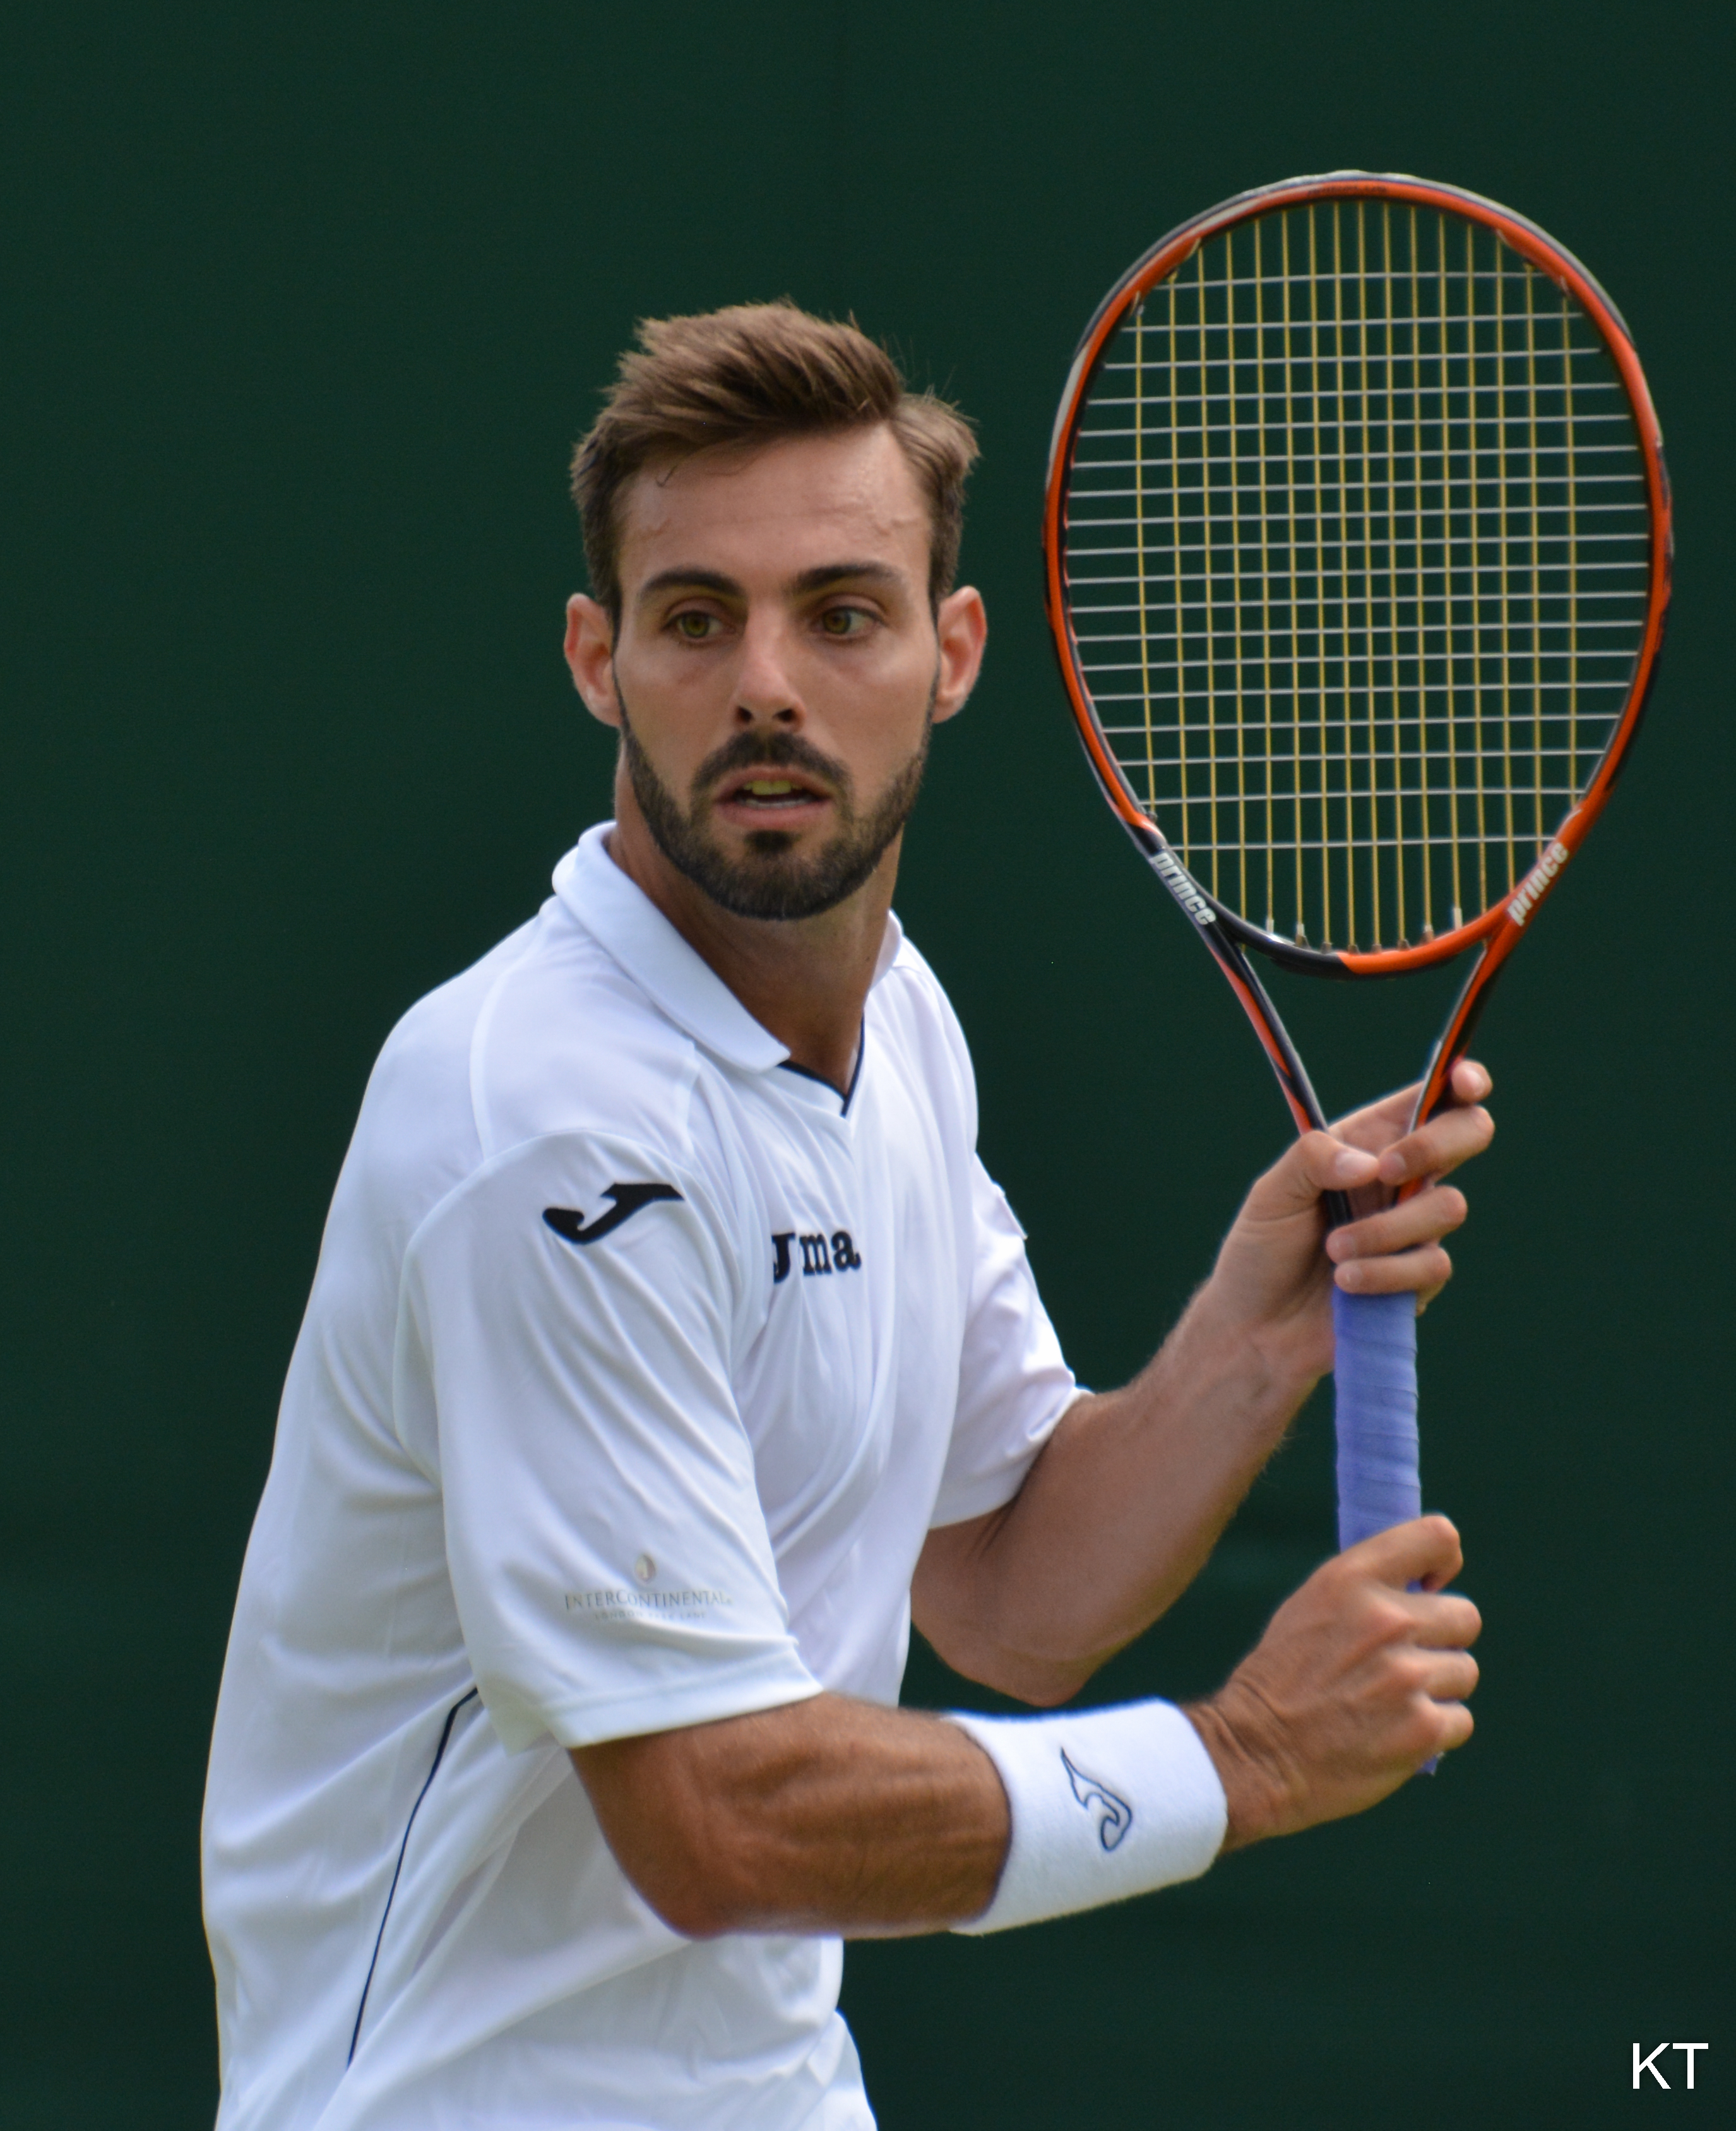 Marcel Granollers Pictures and Photos | Getty Images